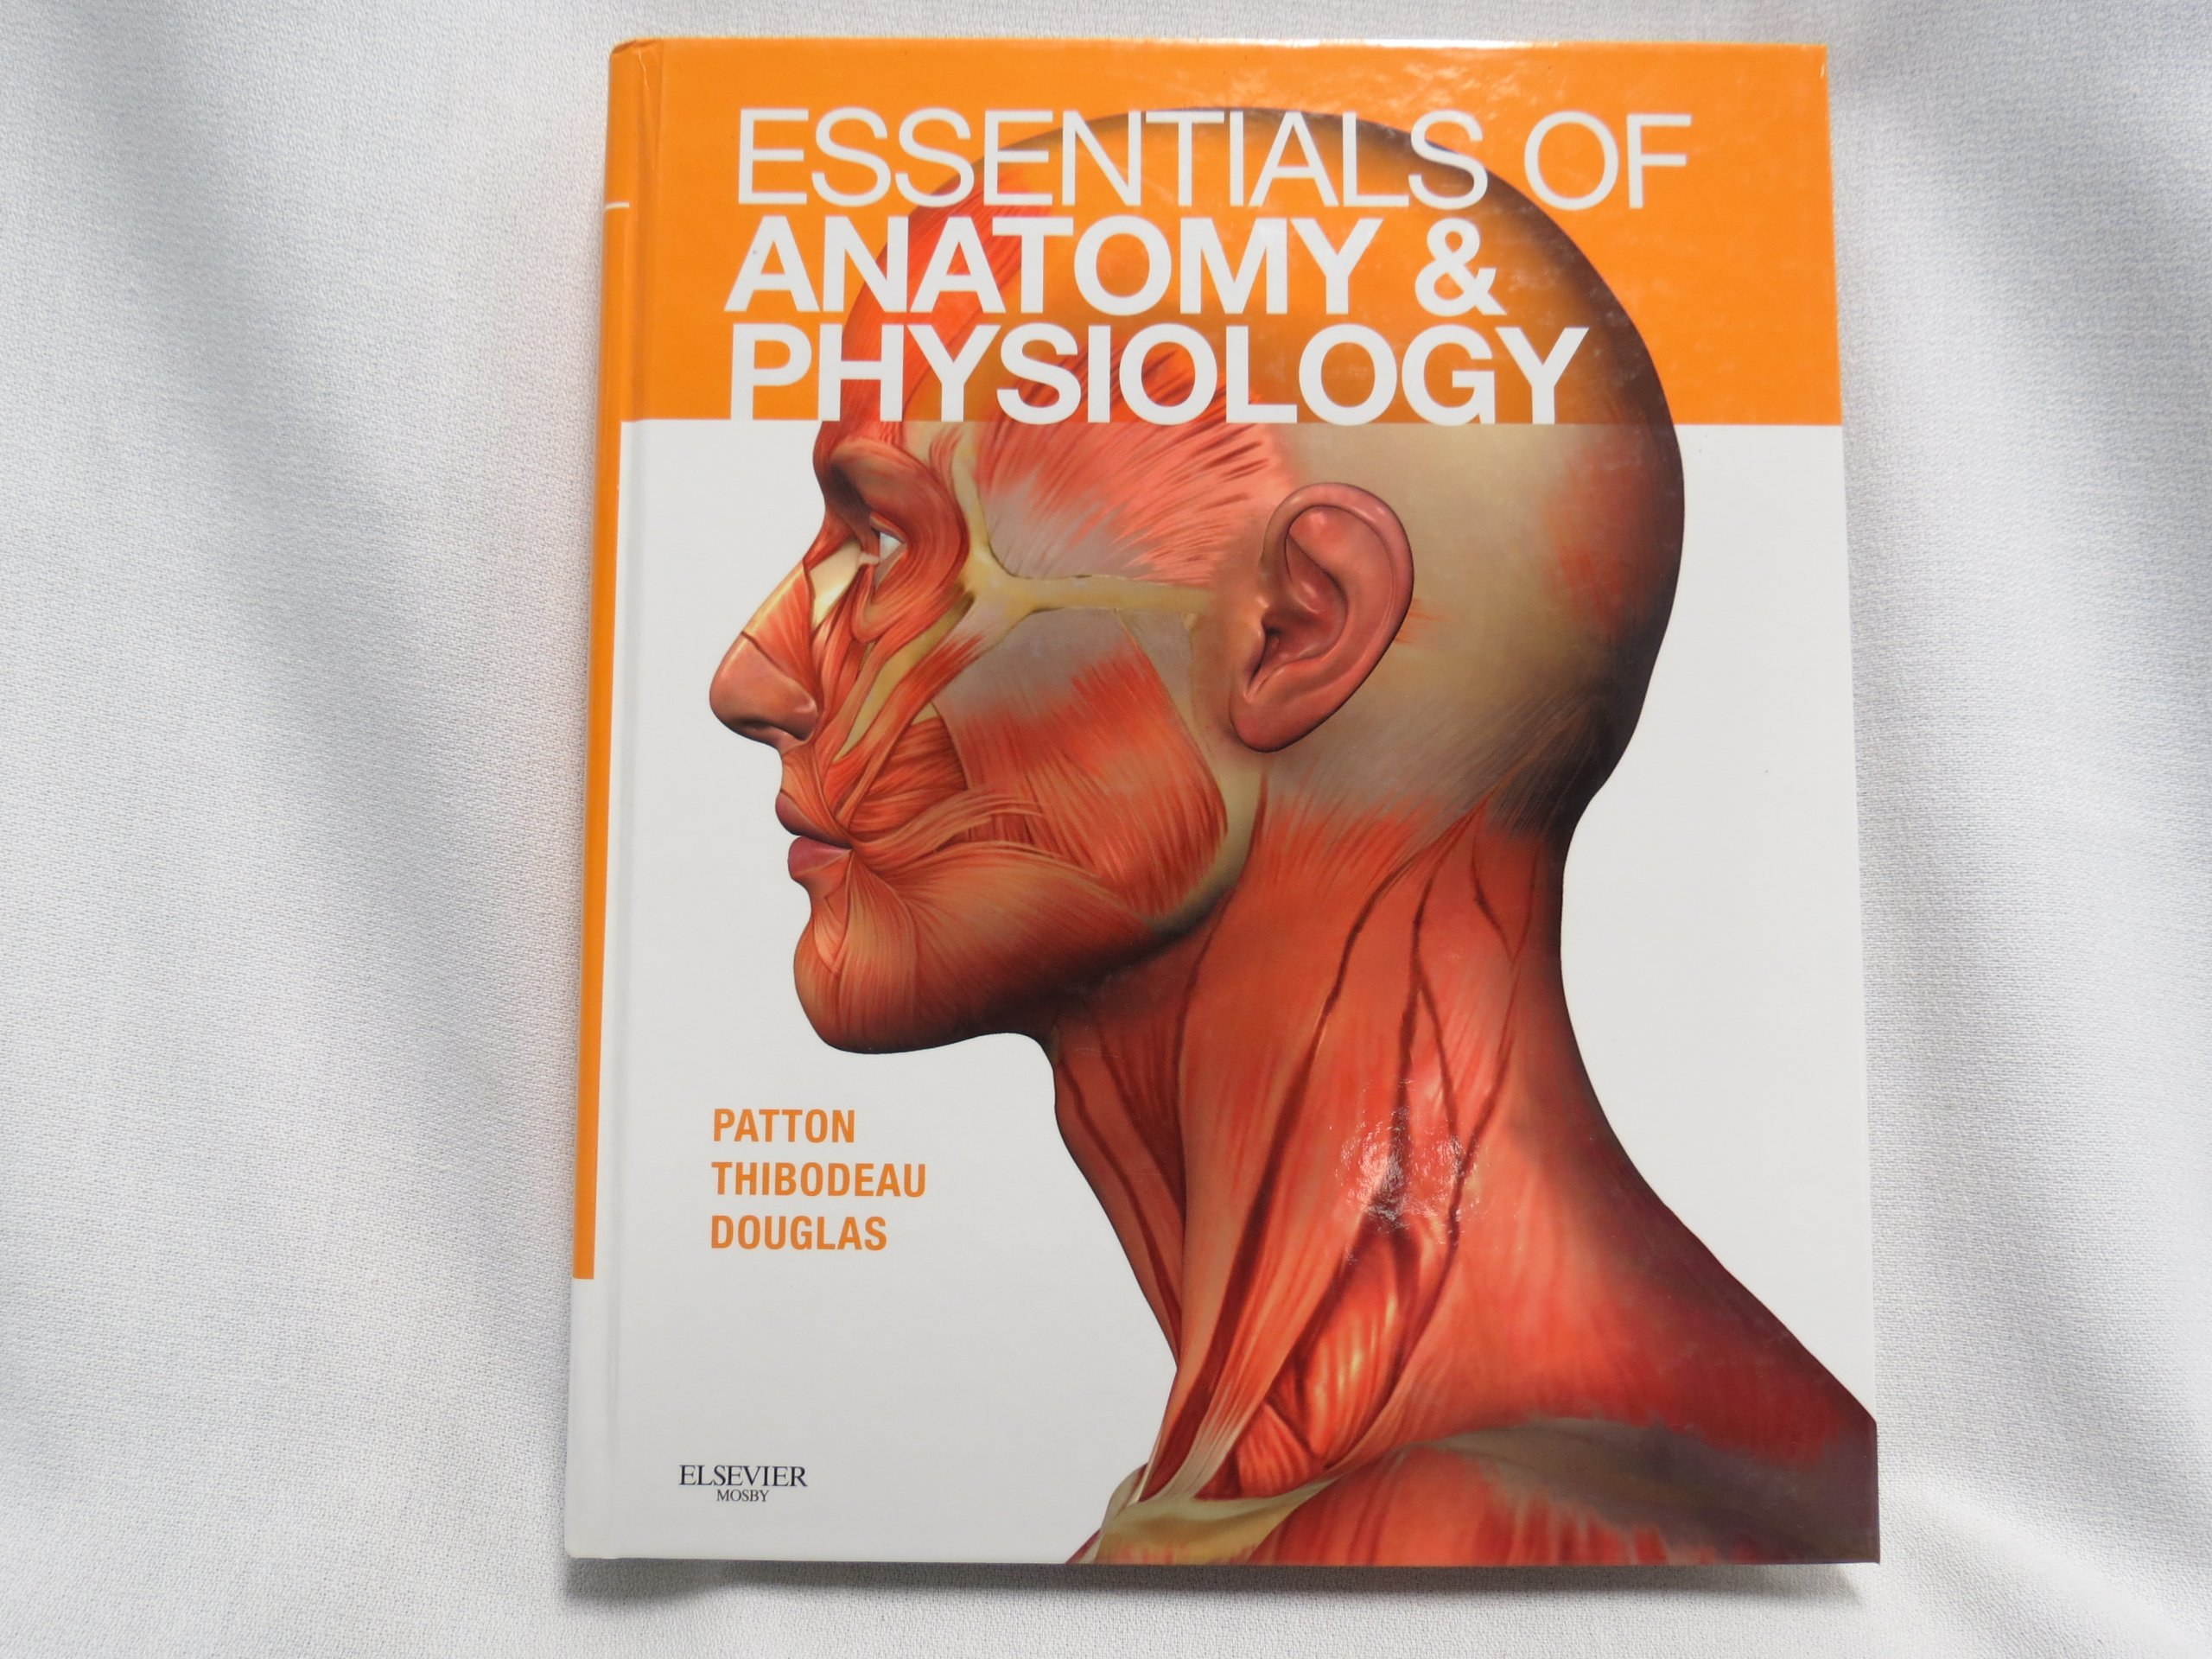 Essentials of Anatomy and Physiology: 9780323085113: Amazon.com: Books